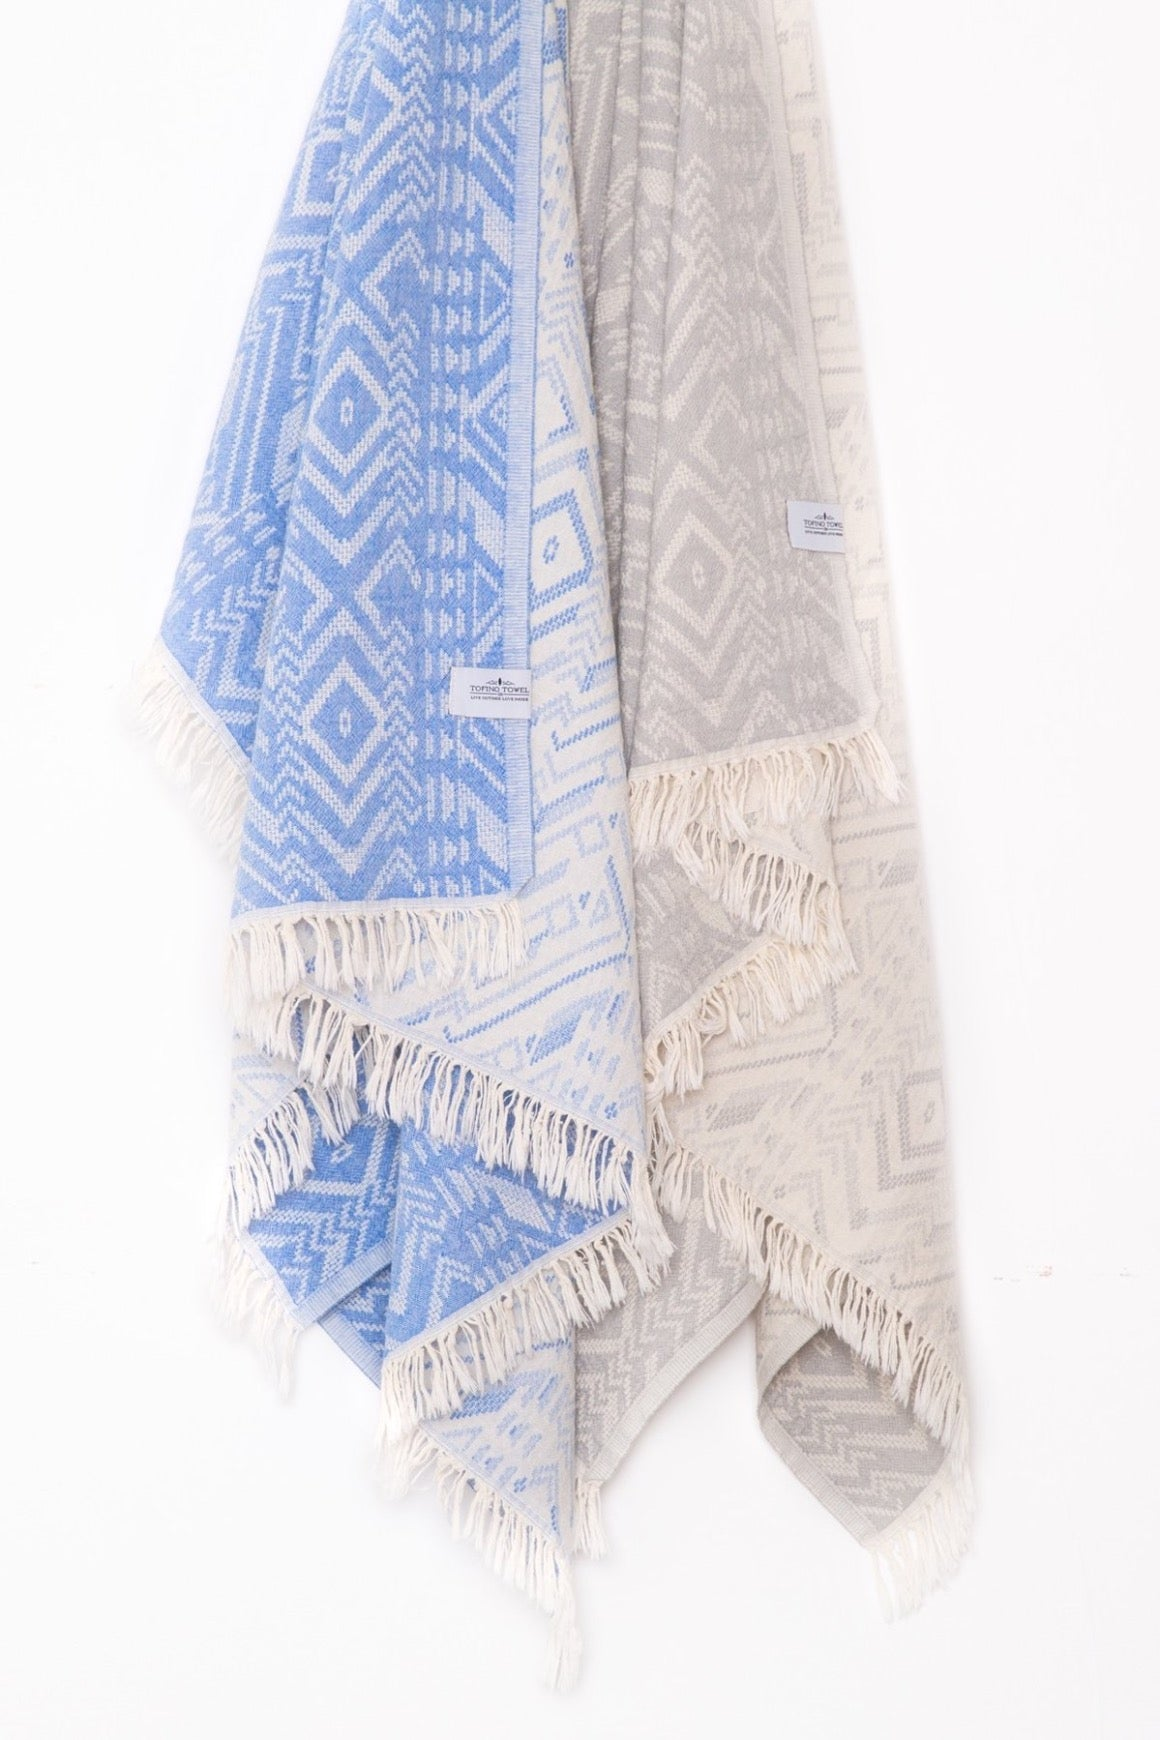 Tofino Towel Co Reef Towel Capri Blue